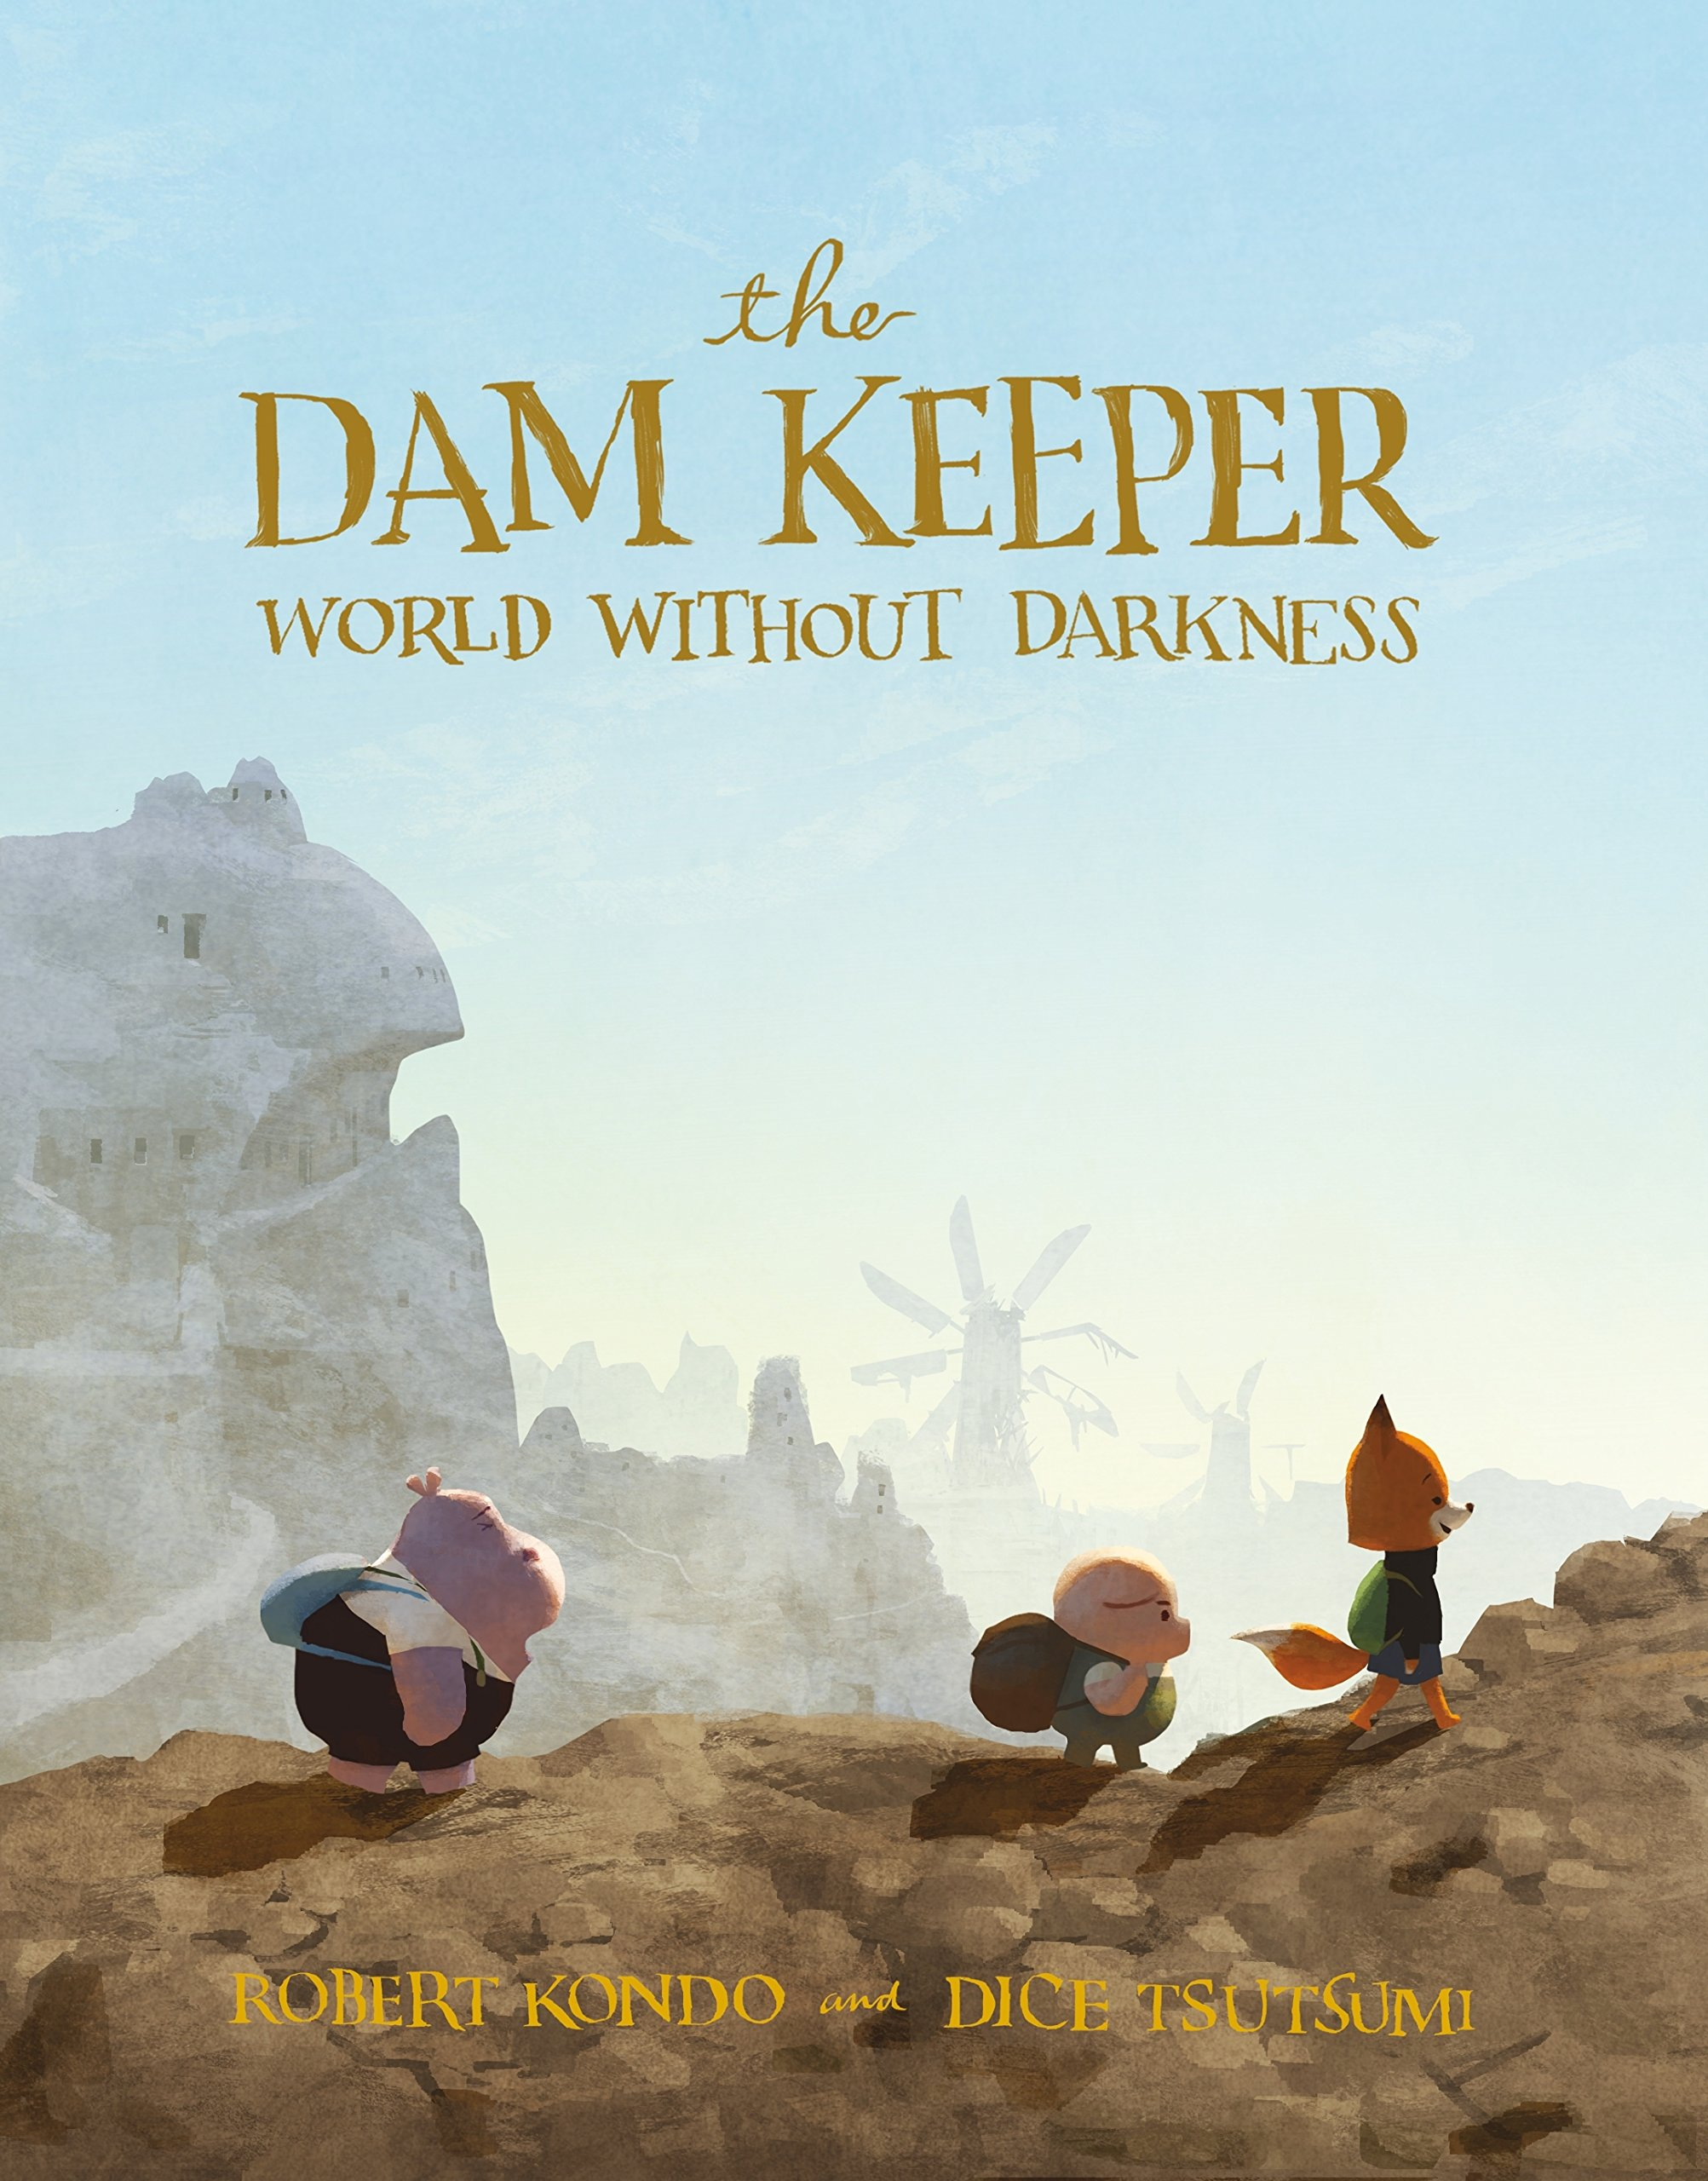 Download The Dam Keeper 2: World Without Darkness 